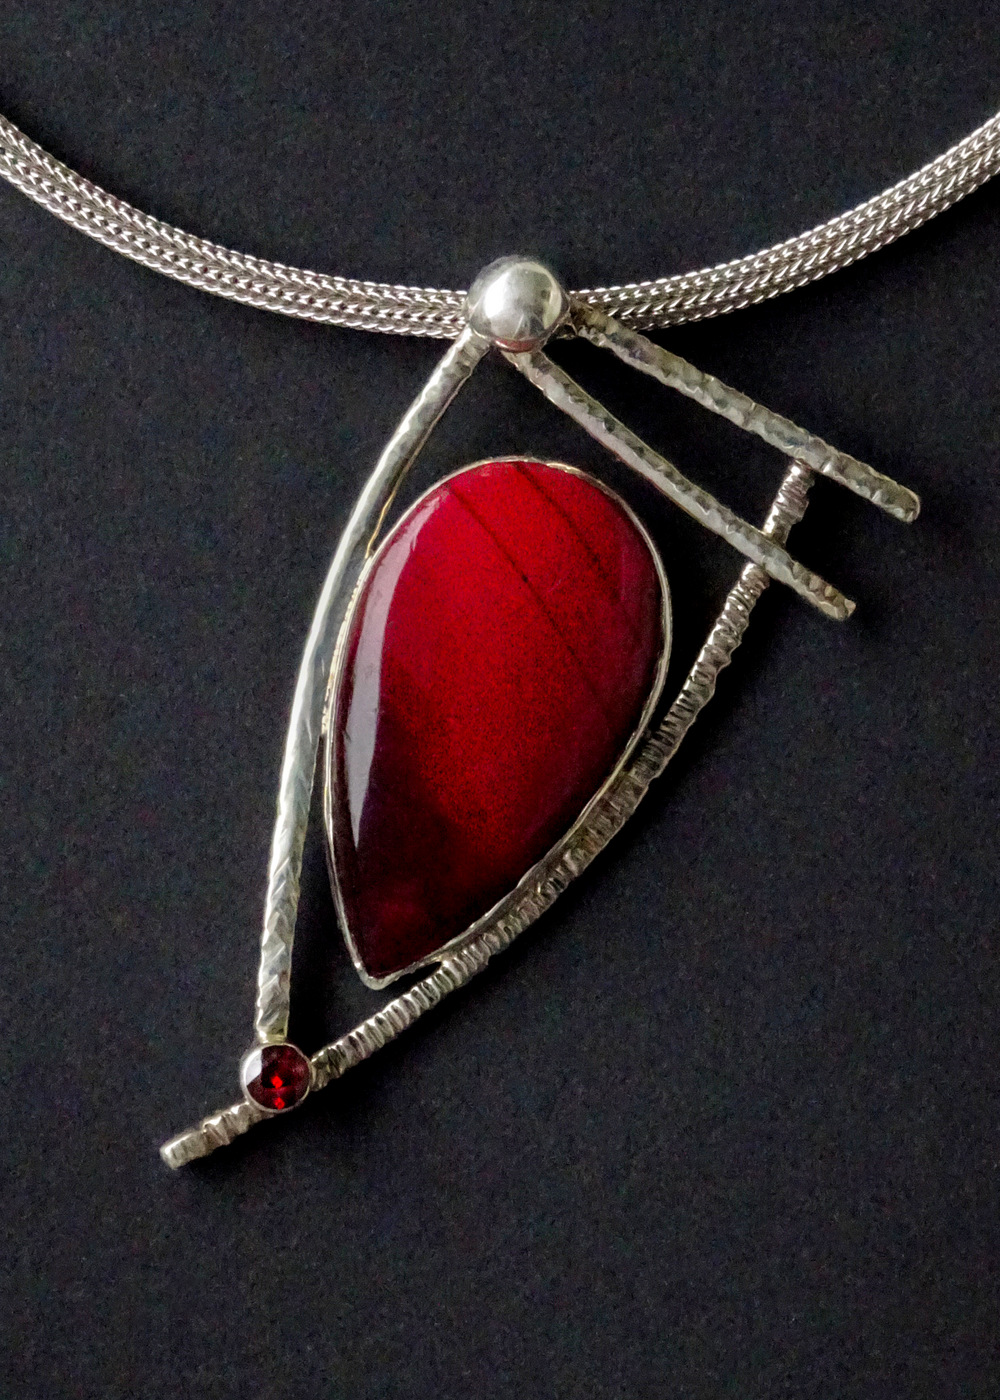 RED STONE GEOMETRIC PENDANT,  2.75 x 1.5 inches,  16 inch adjustable chain